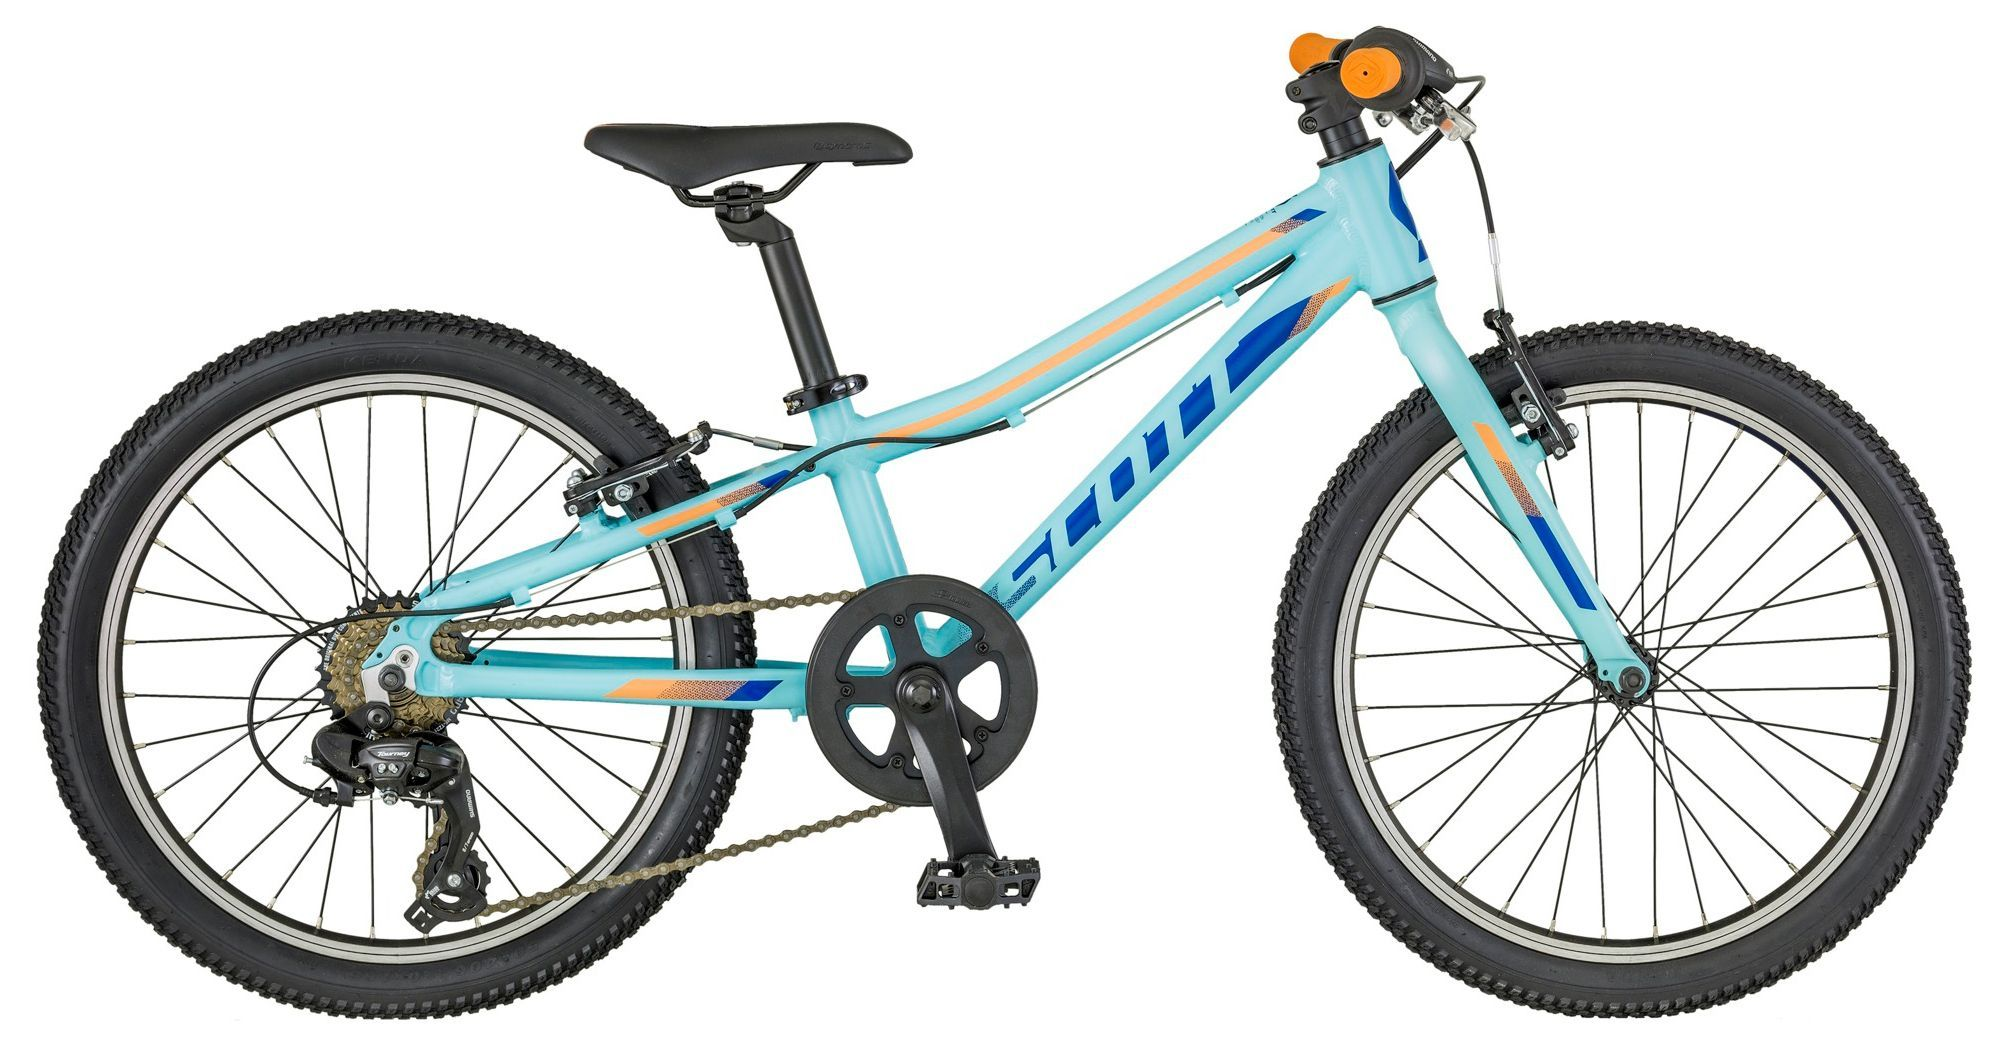 Велосипед Scott Contessa JR 20 rigid fork 2018 велосипед scott sub comfort 20 unisex 28 2016